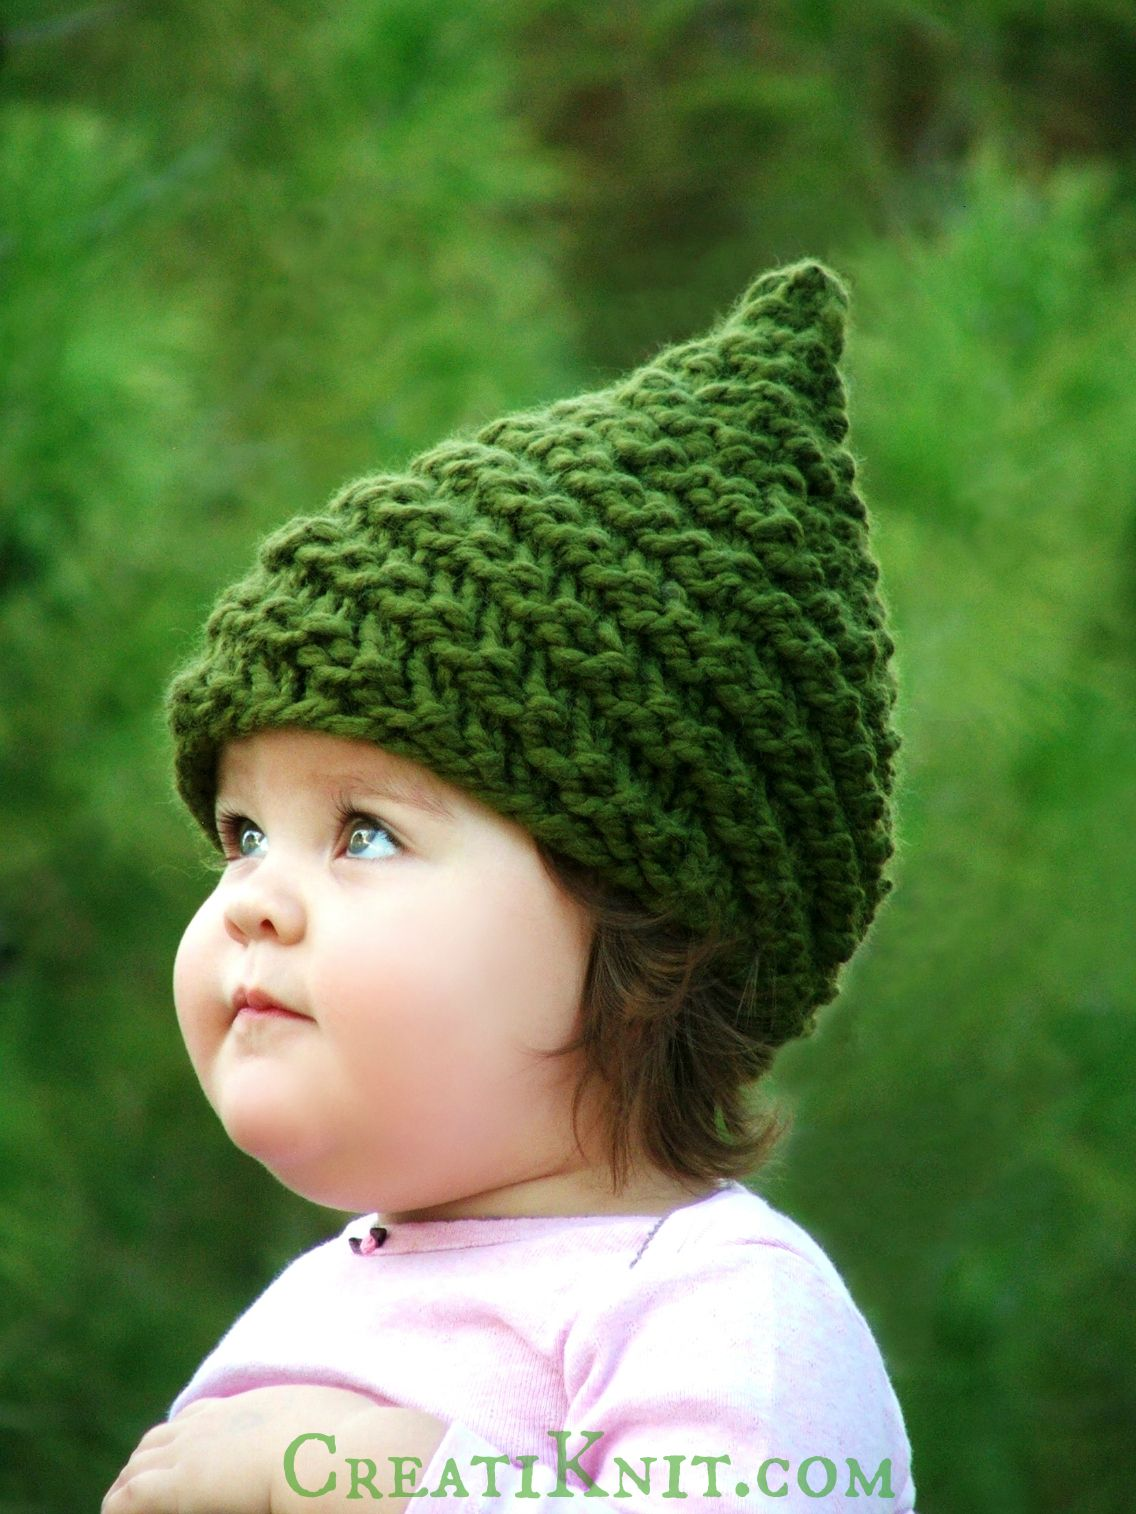 9d759826a Baby Gnome Hat knitting pattern Includes English, German, Spanish ...